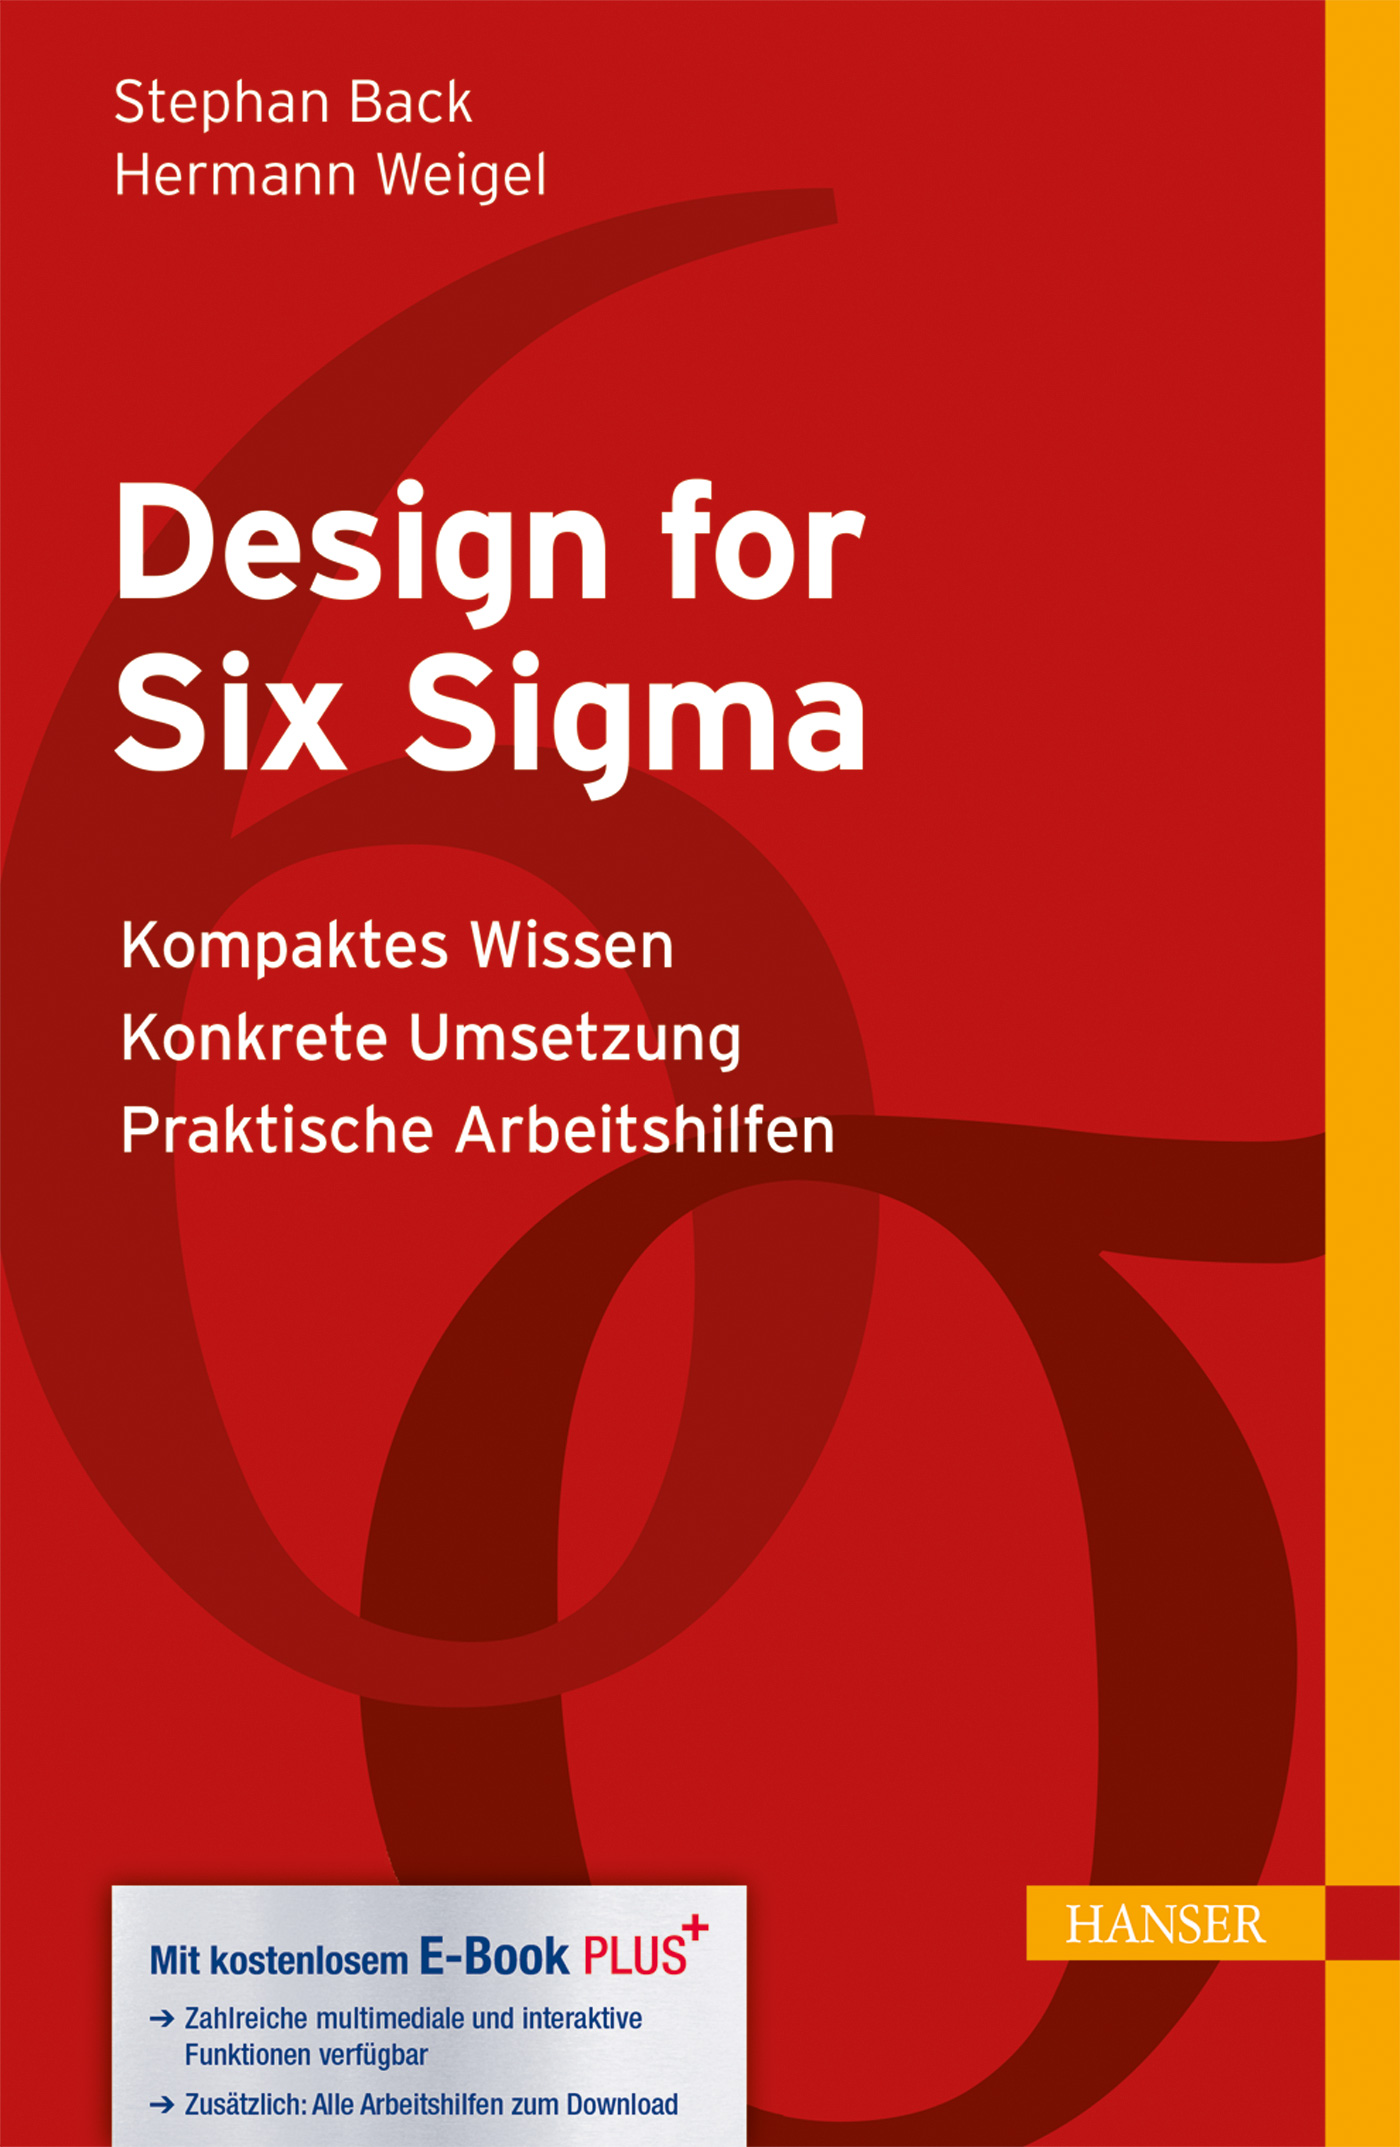 Back, Weigel, Design for Six Sigma, 978-3-446-44046-3